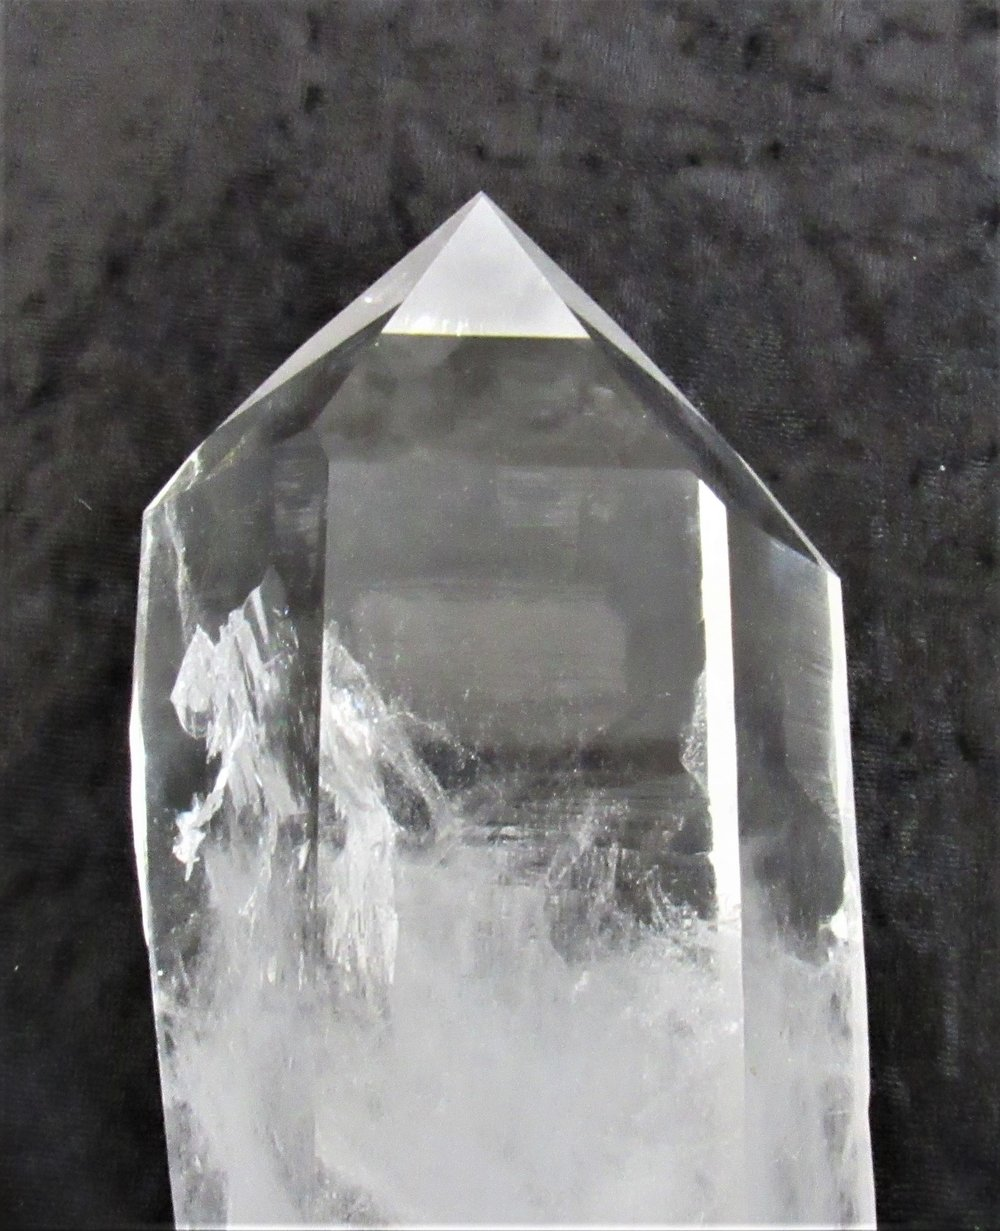 Point- Male - The tip of a quartz crystal that has grown naturally and has not been cut; Male points come to a conical point.